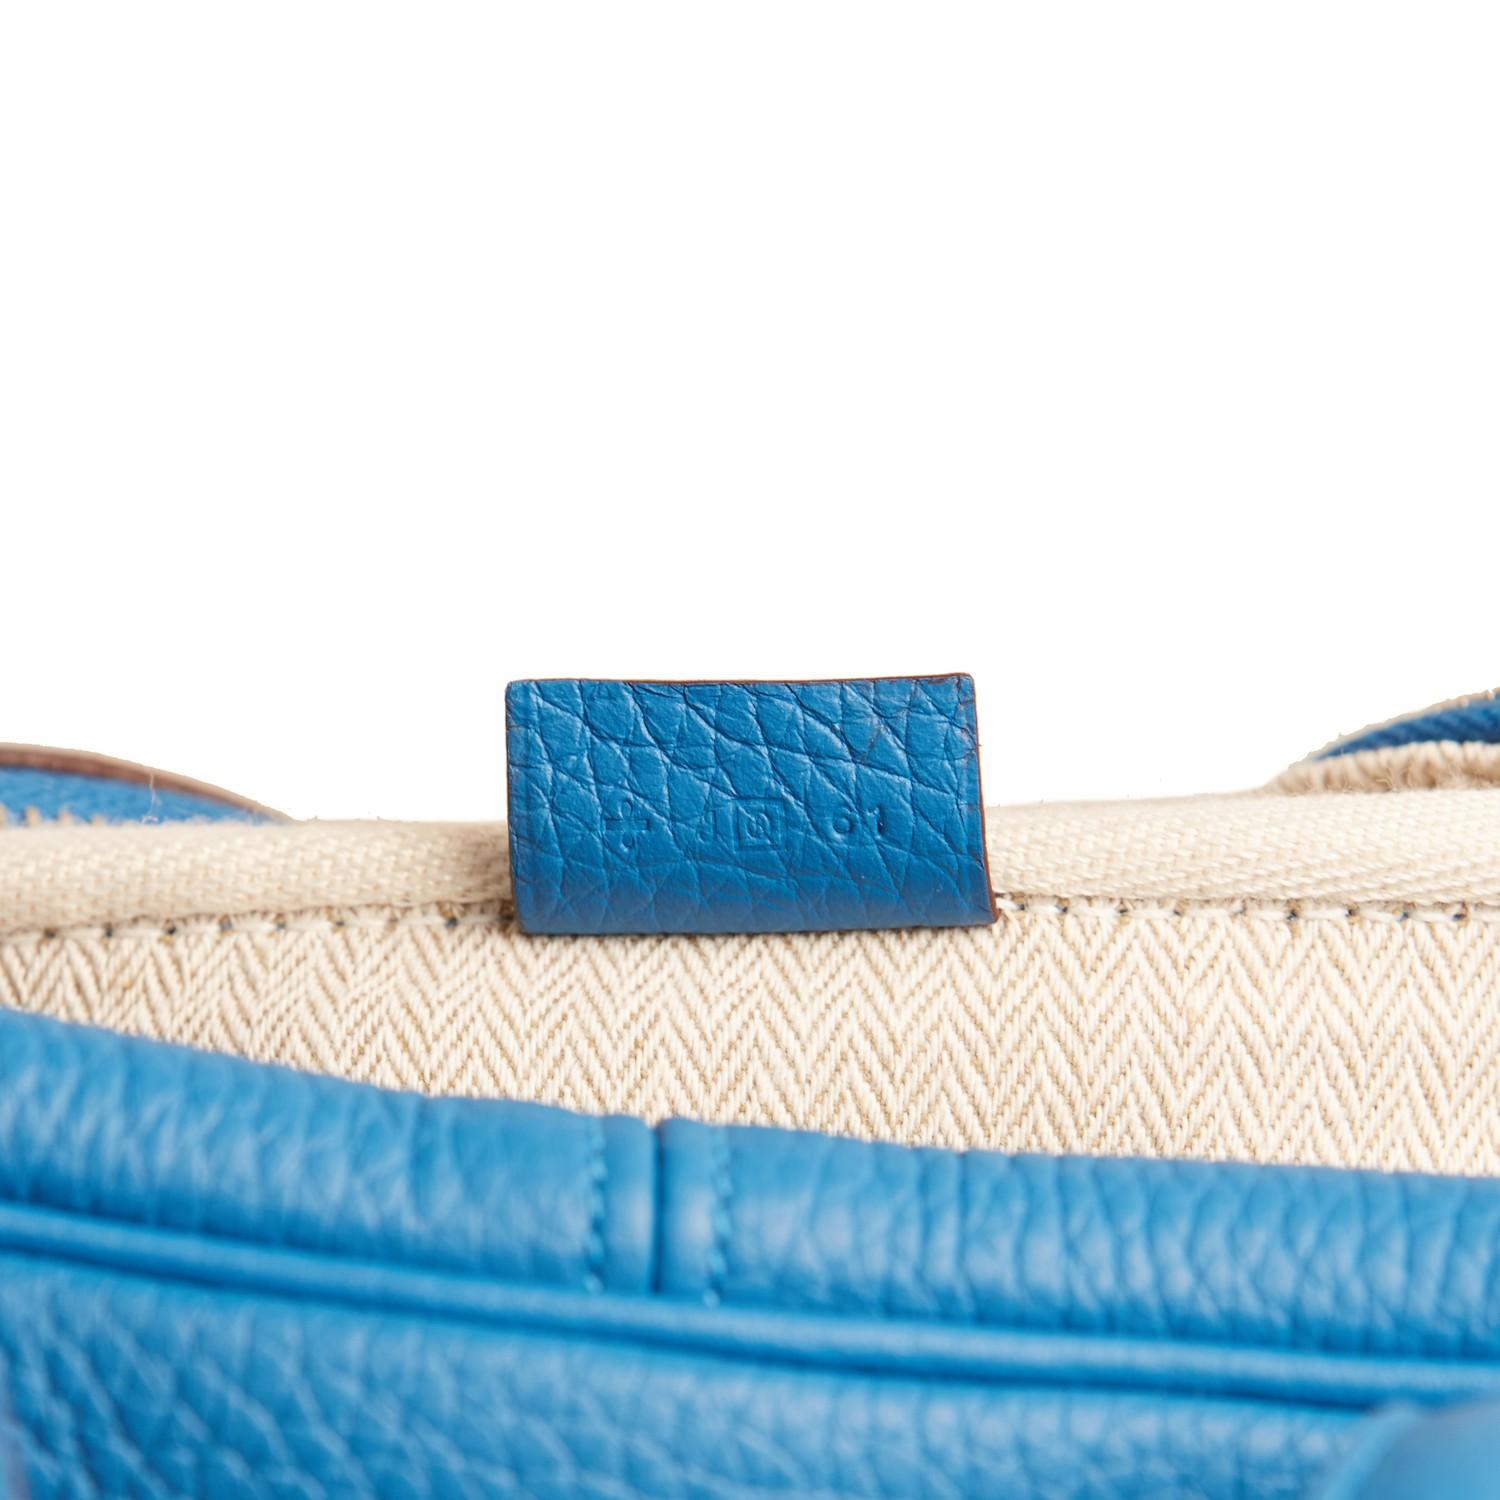 An Hermes Bleu de Galice Victoria II in clemence leather with palladium hardware. Includes - Image 3 of 11